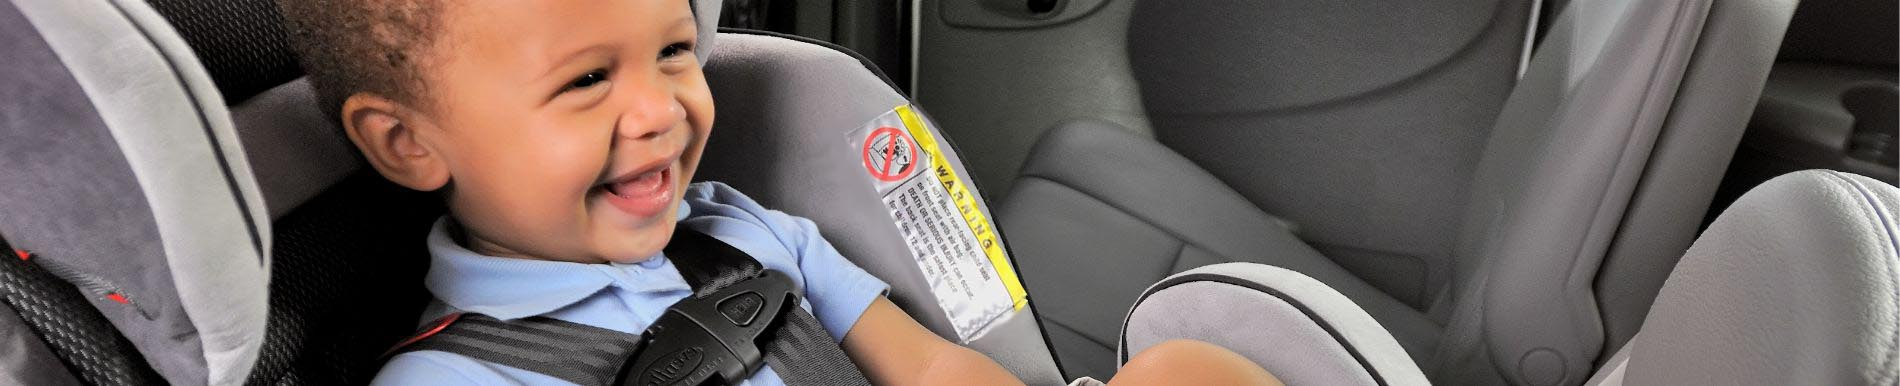 https://www.healthychildren.org/SiteCollectionImage-Homepage-Banners/Convertibleseat_rearfacing.jpg